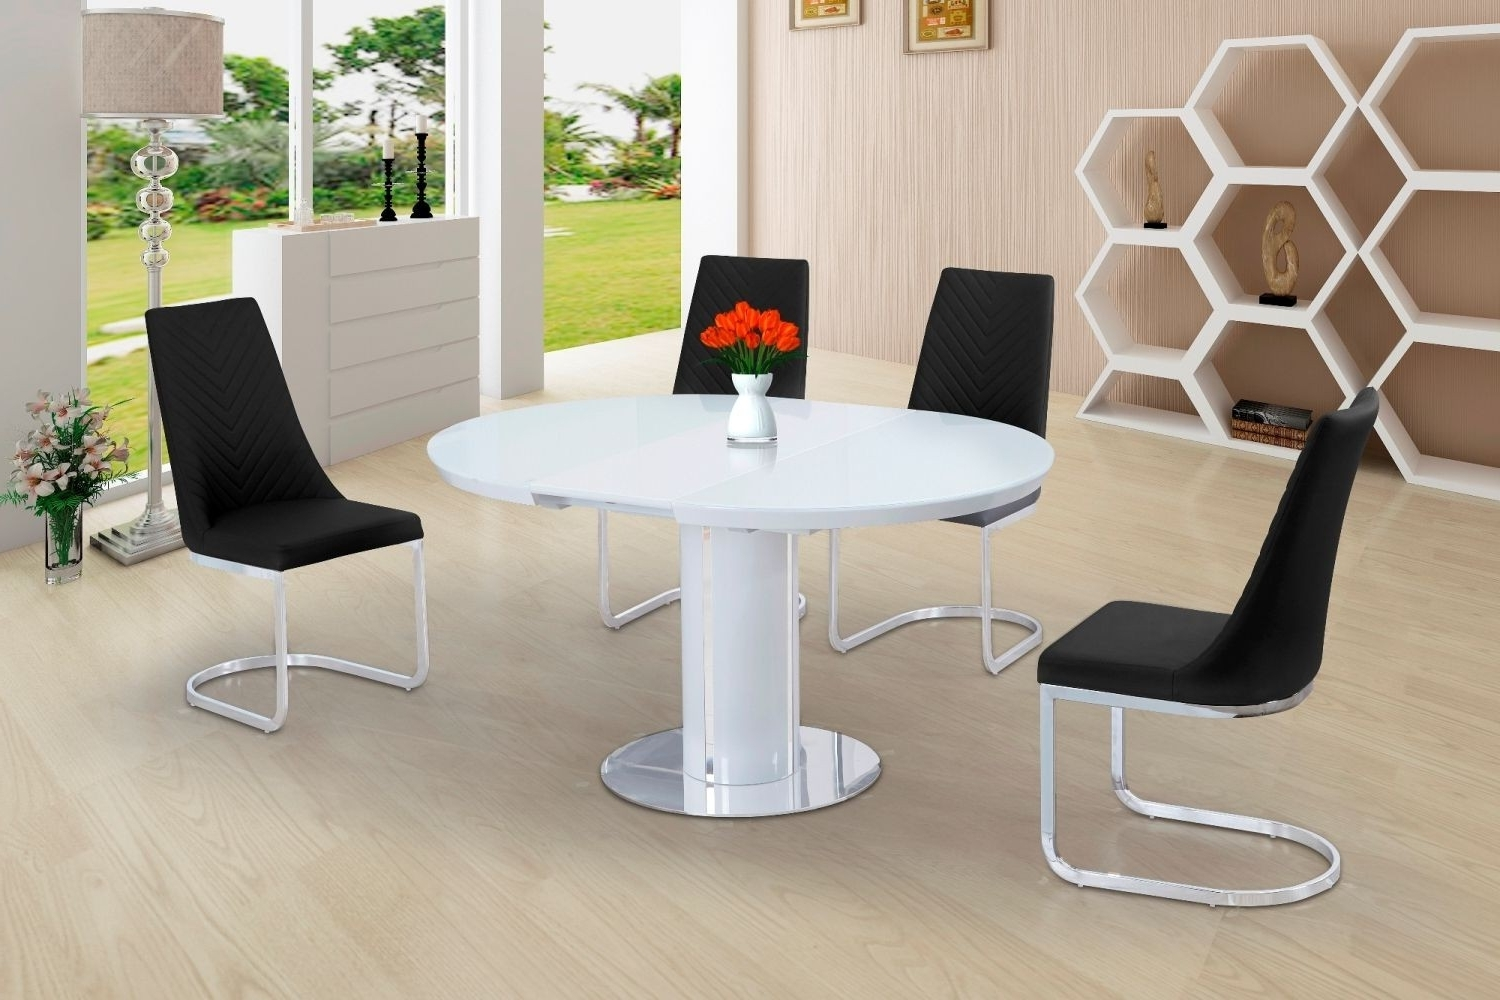 Small Round White Dining Tables Pertaining To Famous Buy Space Saving White Gloss Extending Round Dining Table (View 15 of 25)